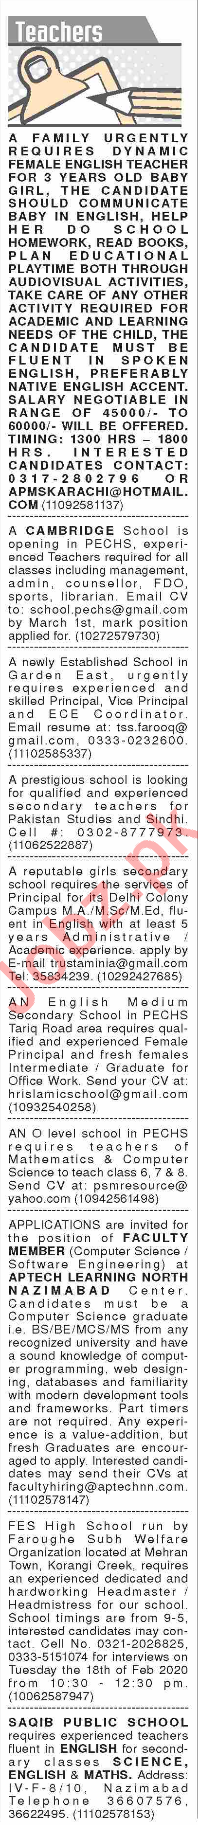 Dawn Sunday Classified Ads 16 Feb 2020 for Teaching Staff